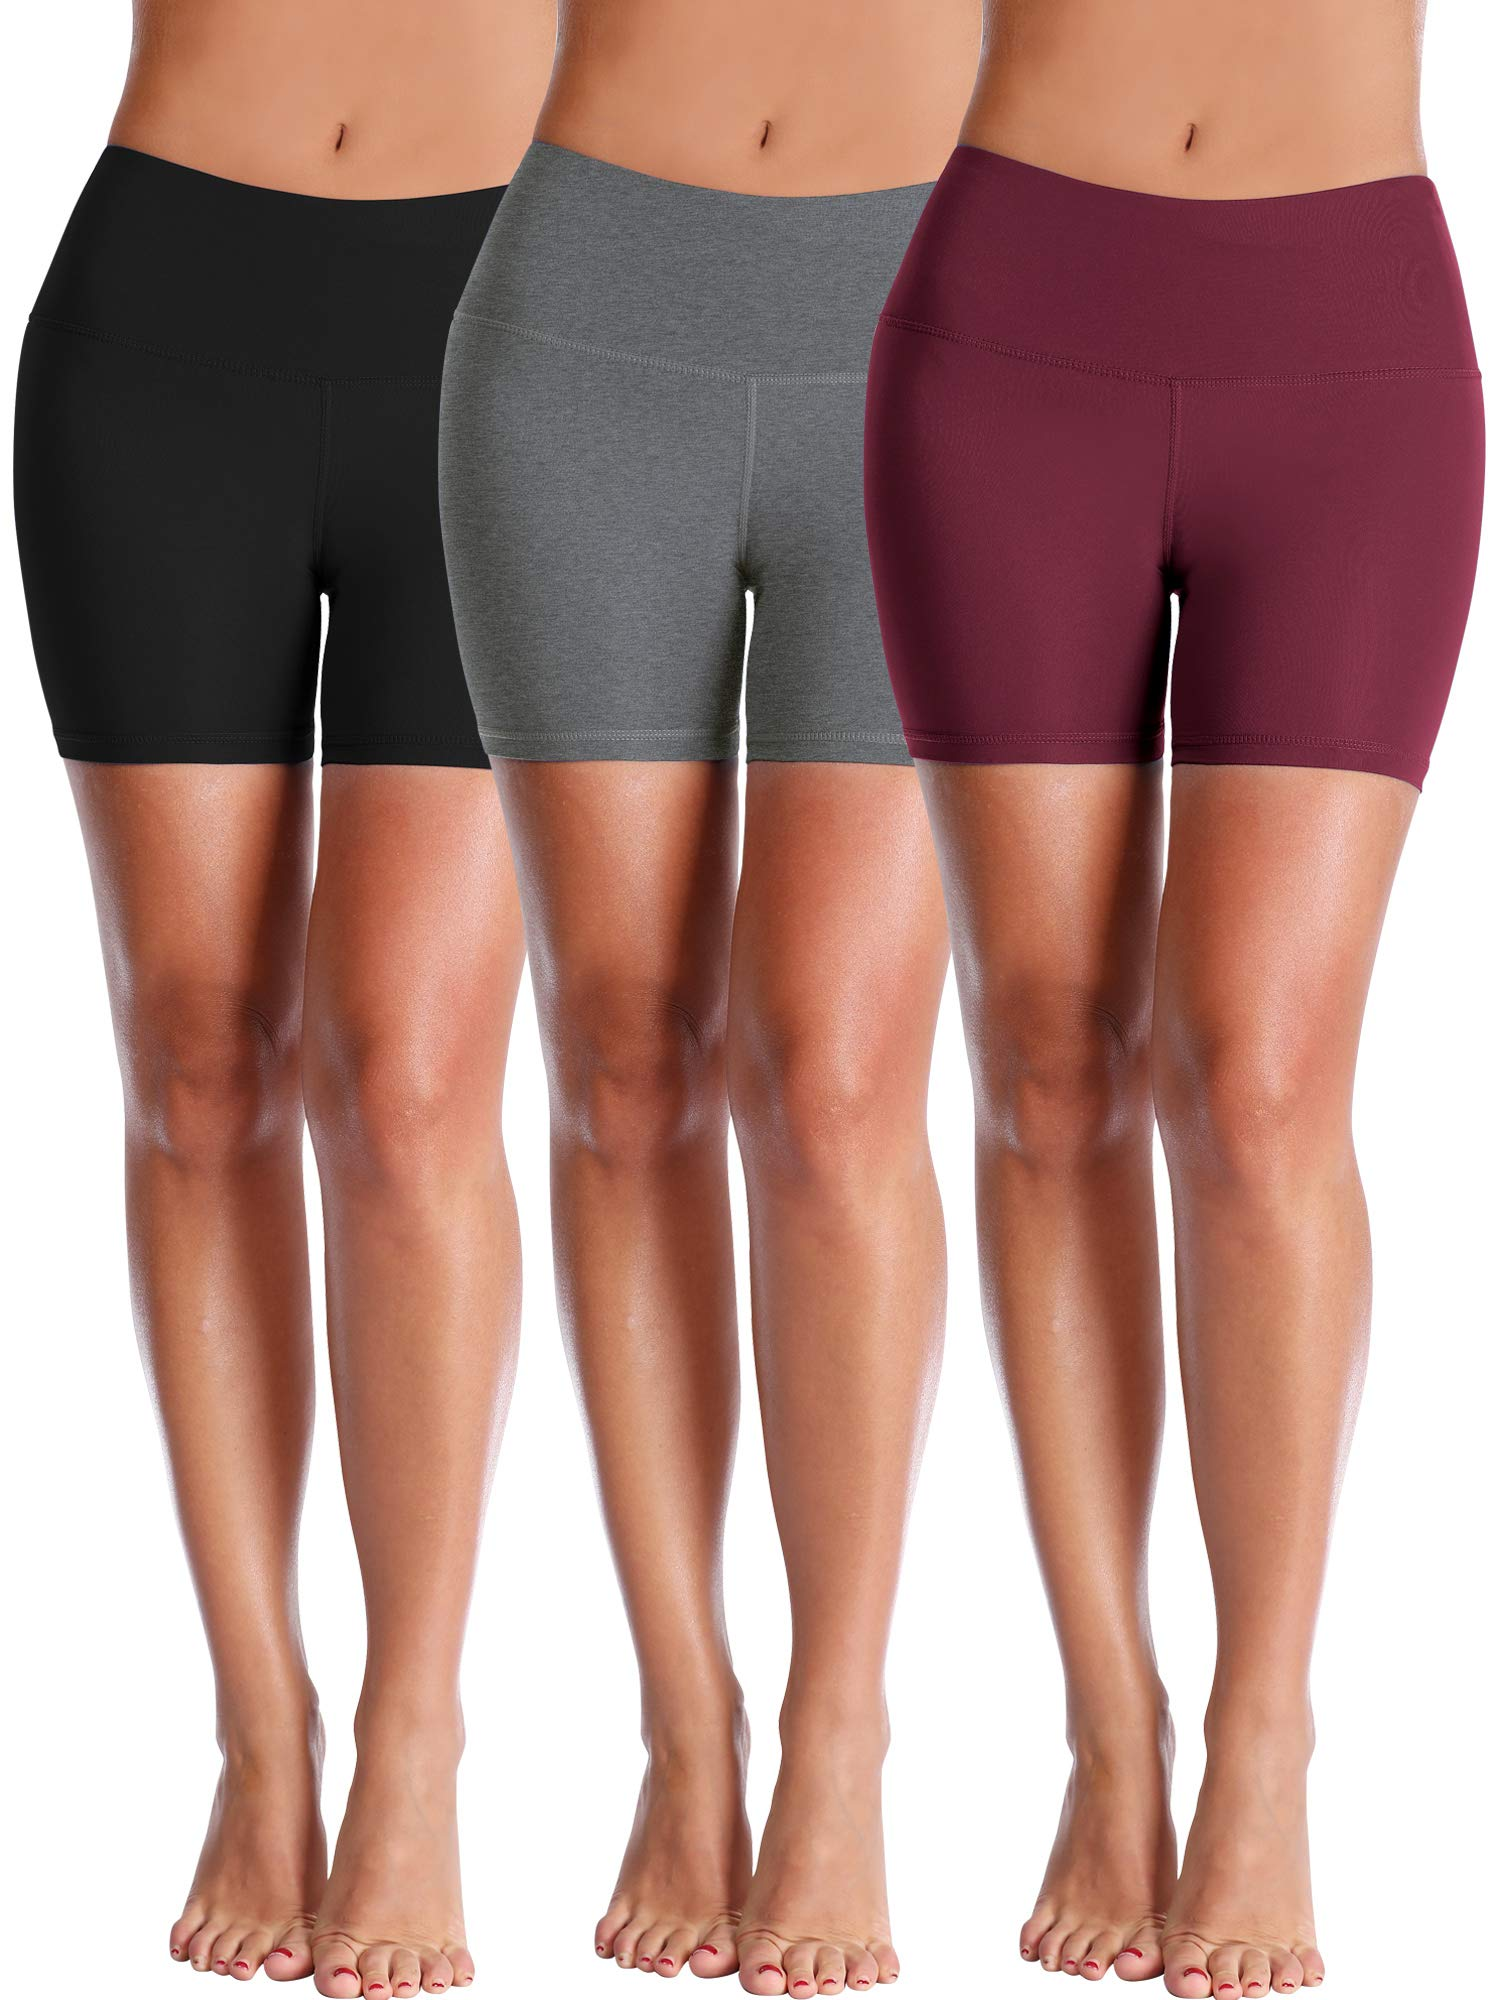 Cadmus Women's High Waisted Compression Shorts,3 Pack,1025,Black,Grey,Wine Red,Small by Cadmus